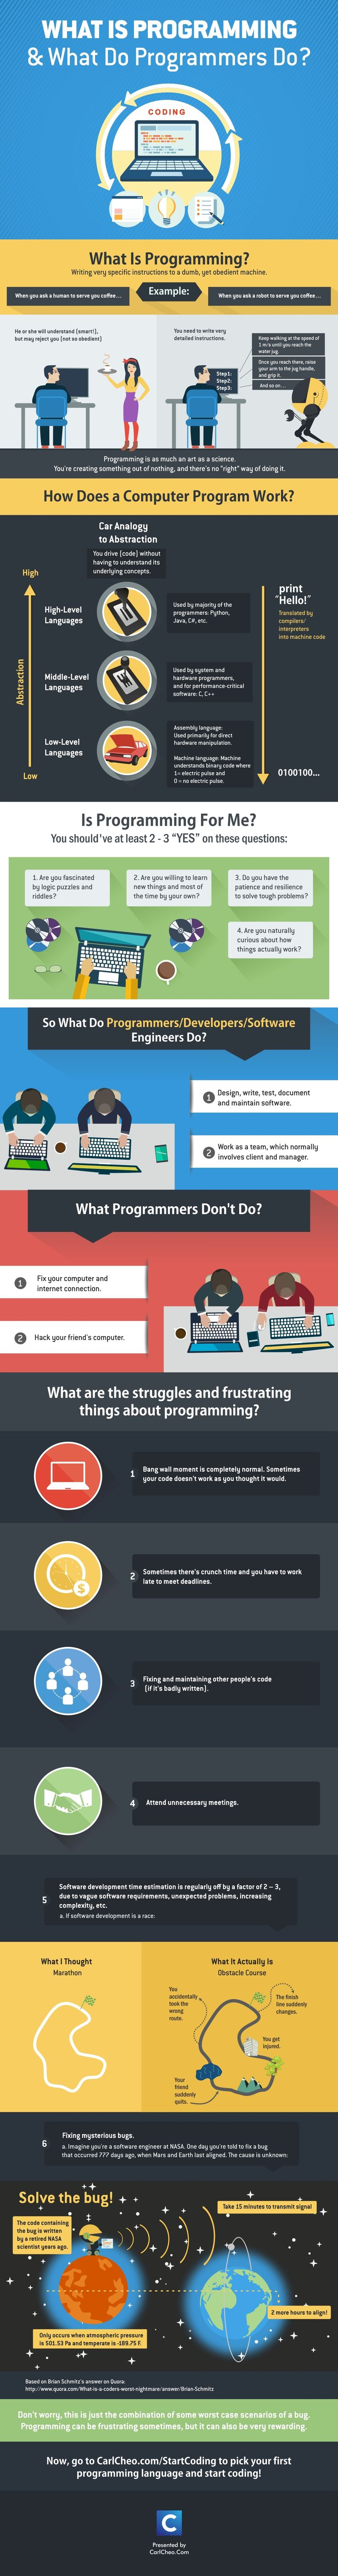 best ideas about learn programming code code what is programming and what do programmers do infographic